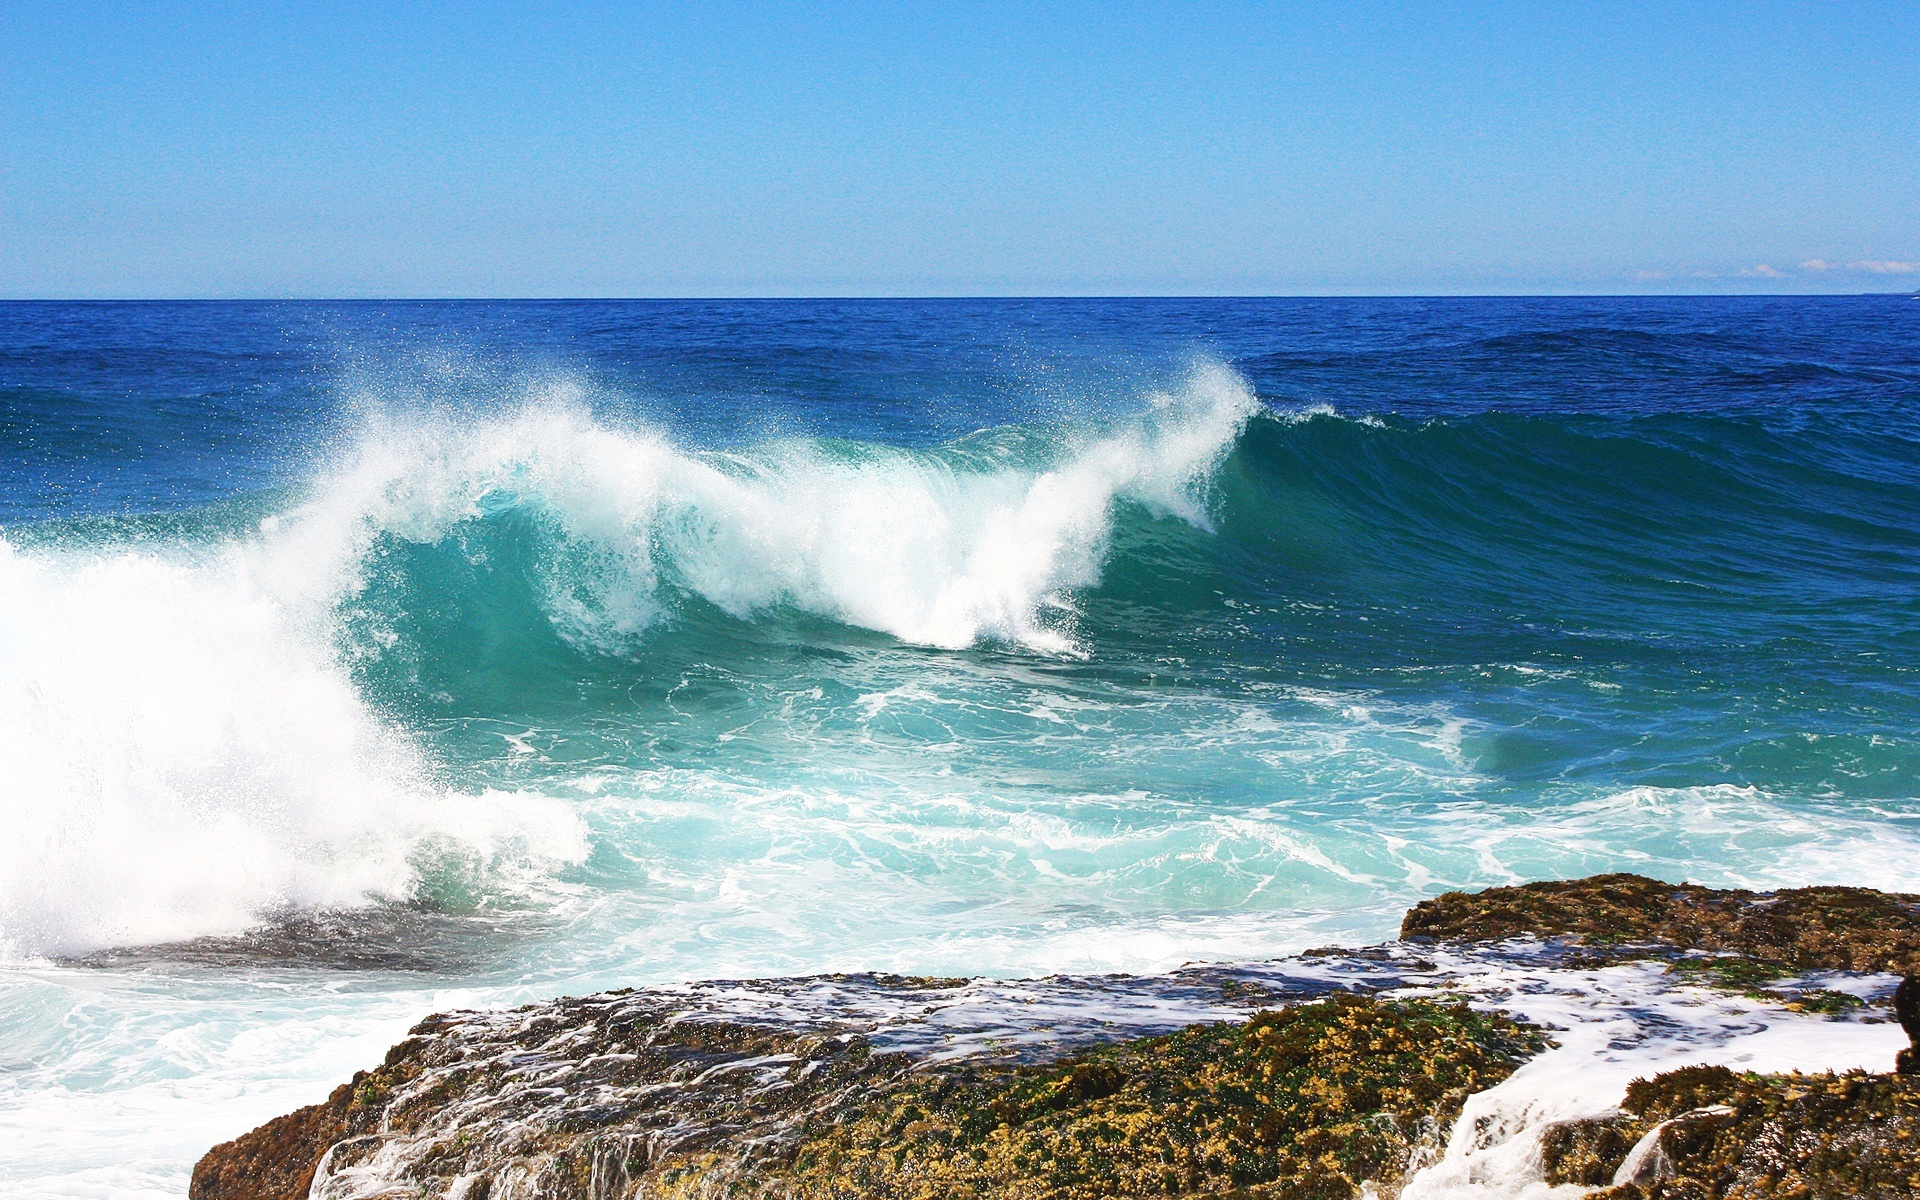 Sea Wave Wallpapers In Jpg Format For Free Download